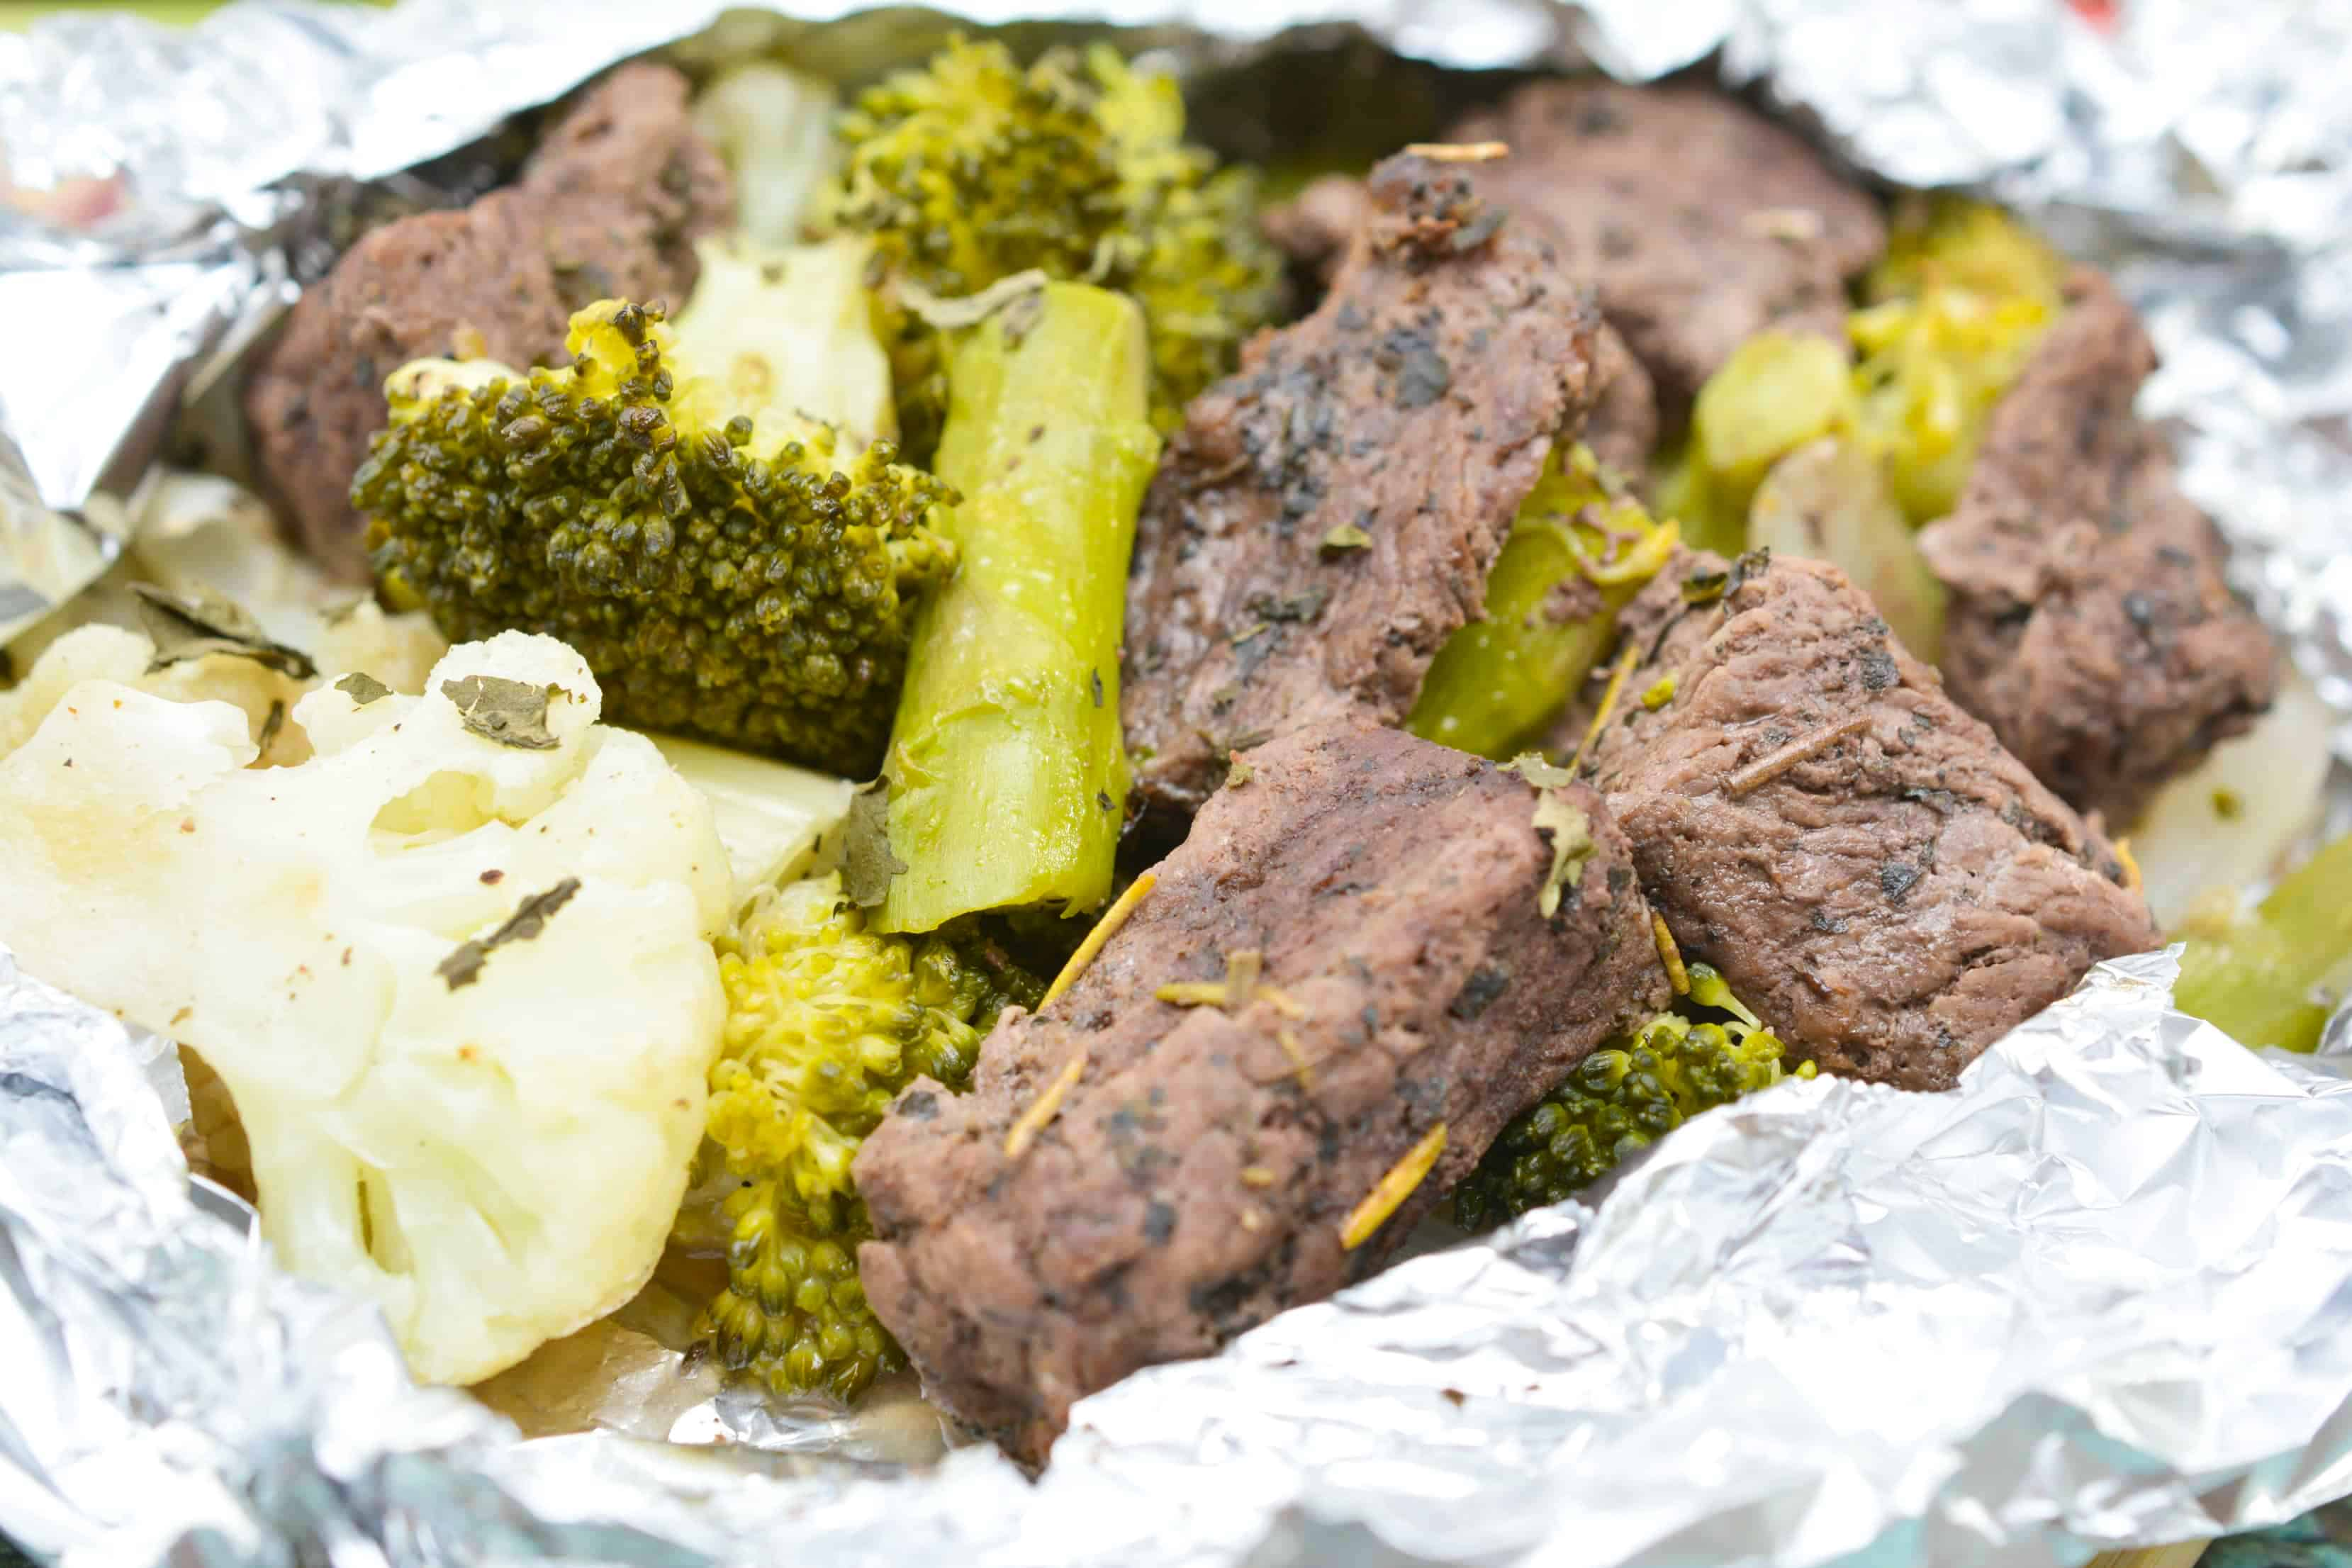 steak and vegetables in a foil packet